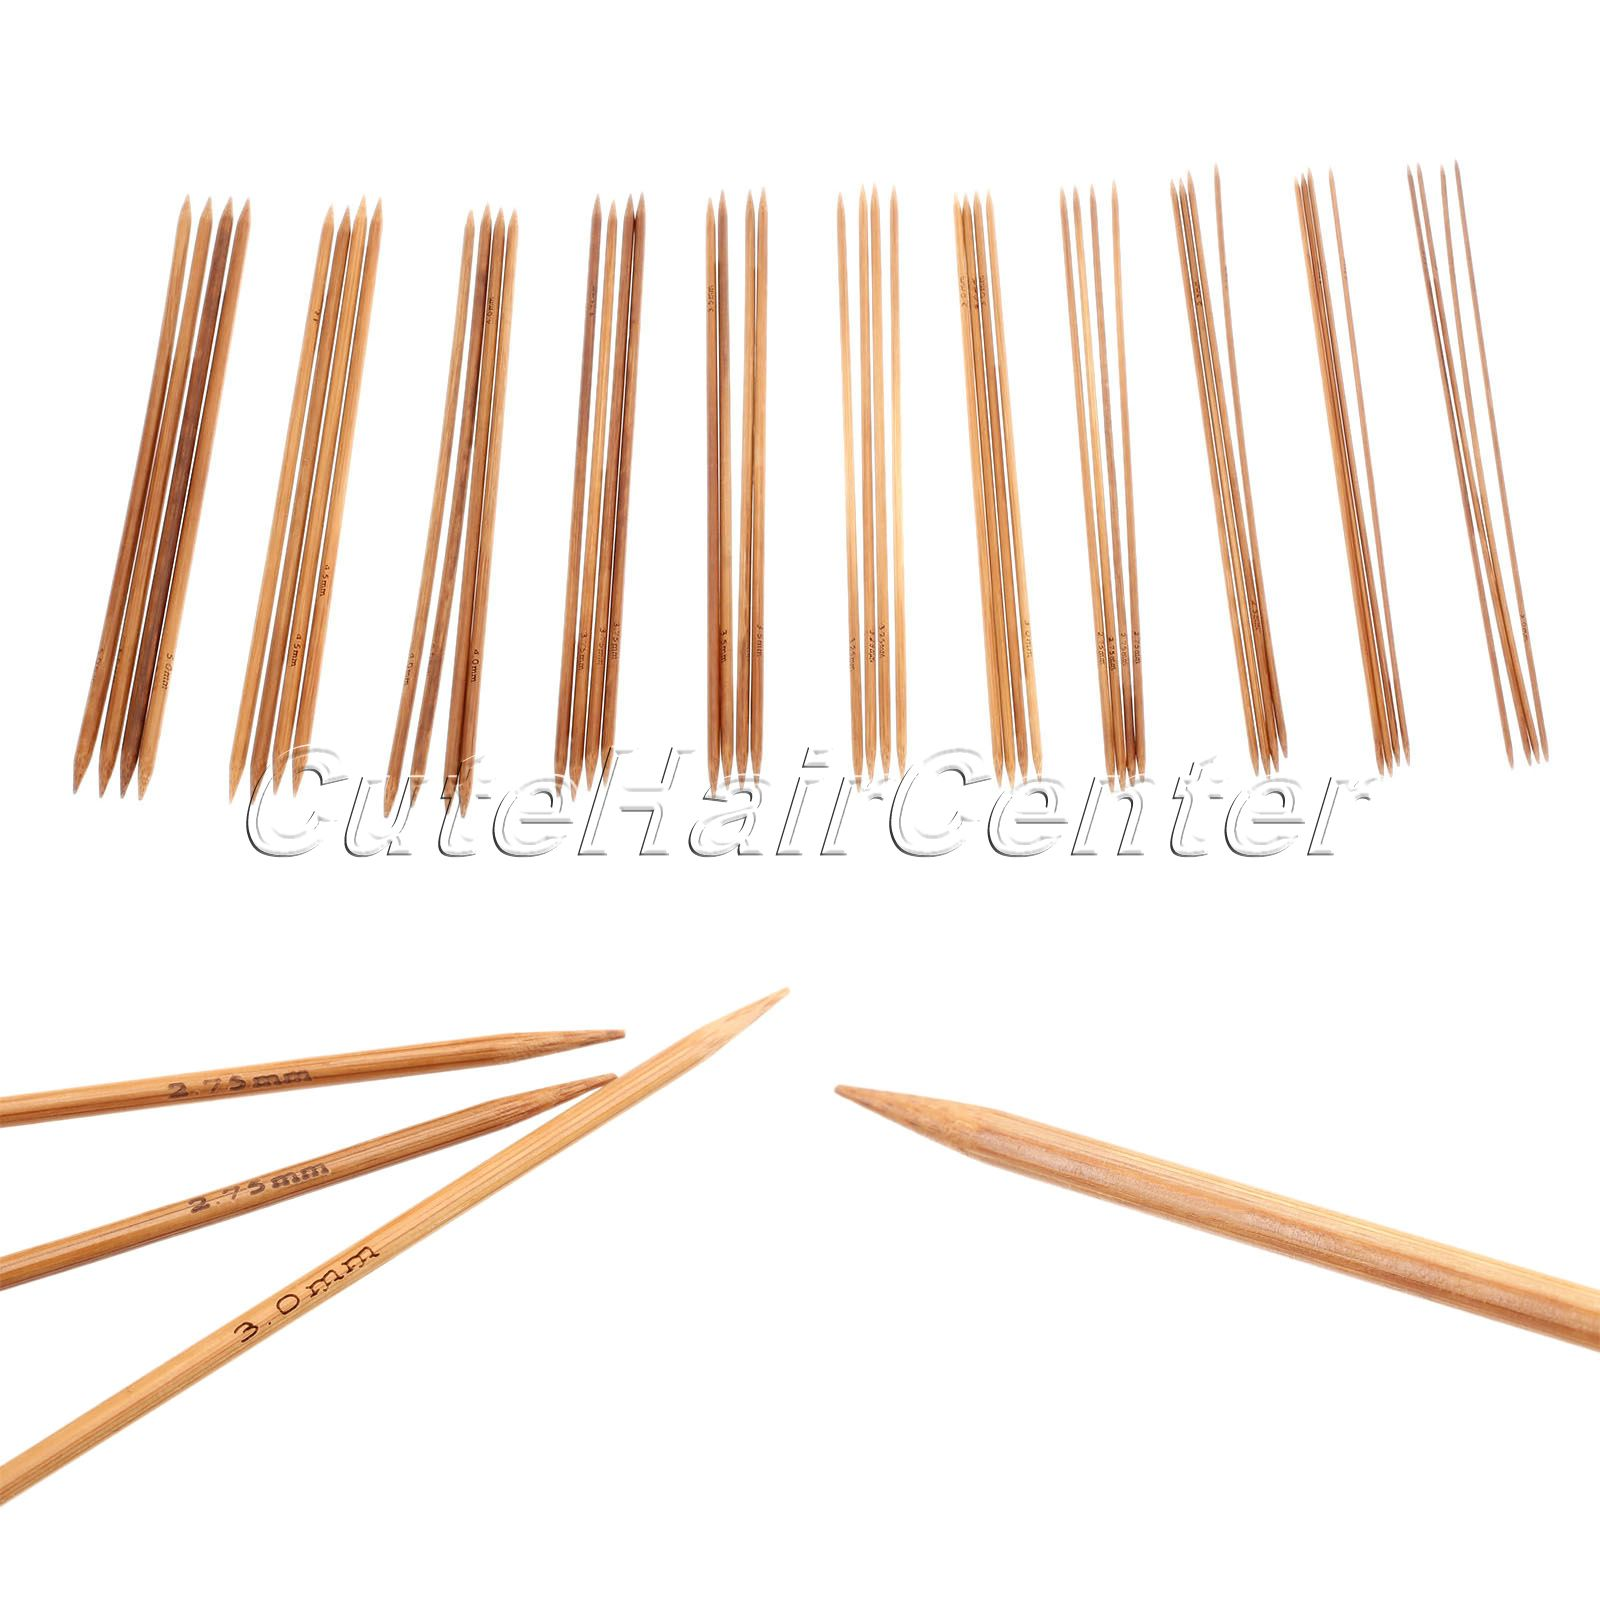 Knitting On Double Pointed Needles Joining In The Round : Hot sale pcs sizes double pointed carbonized bamboo